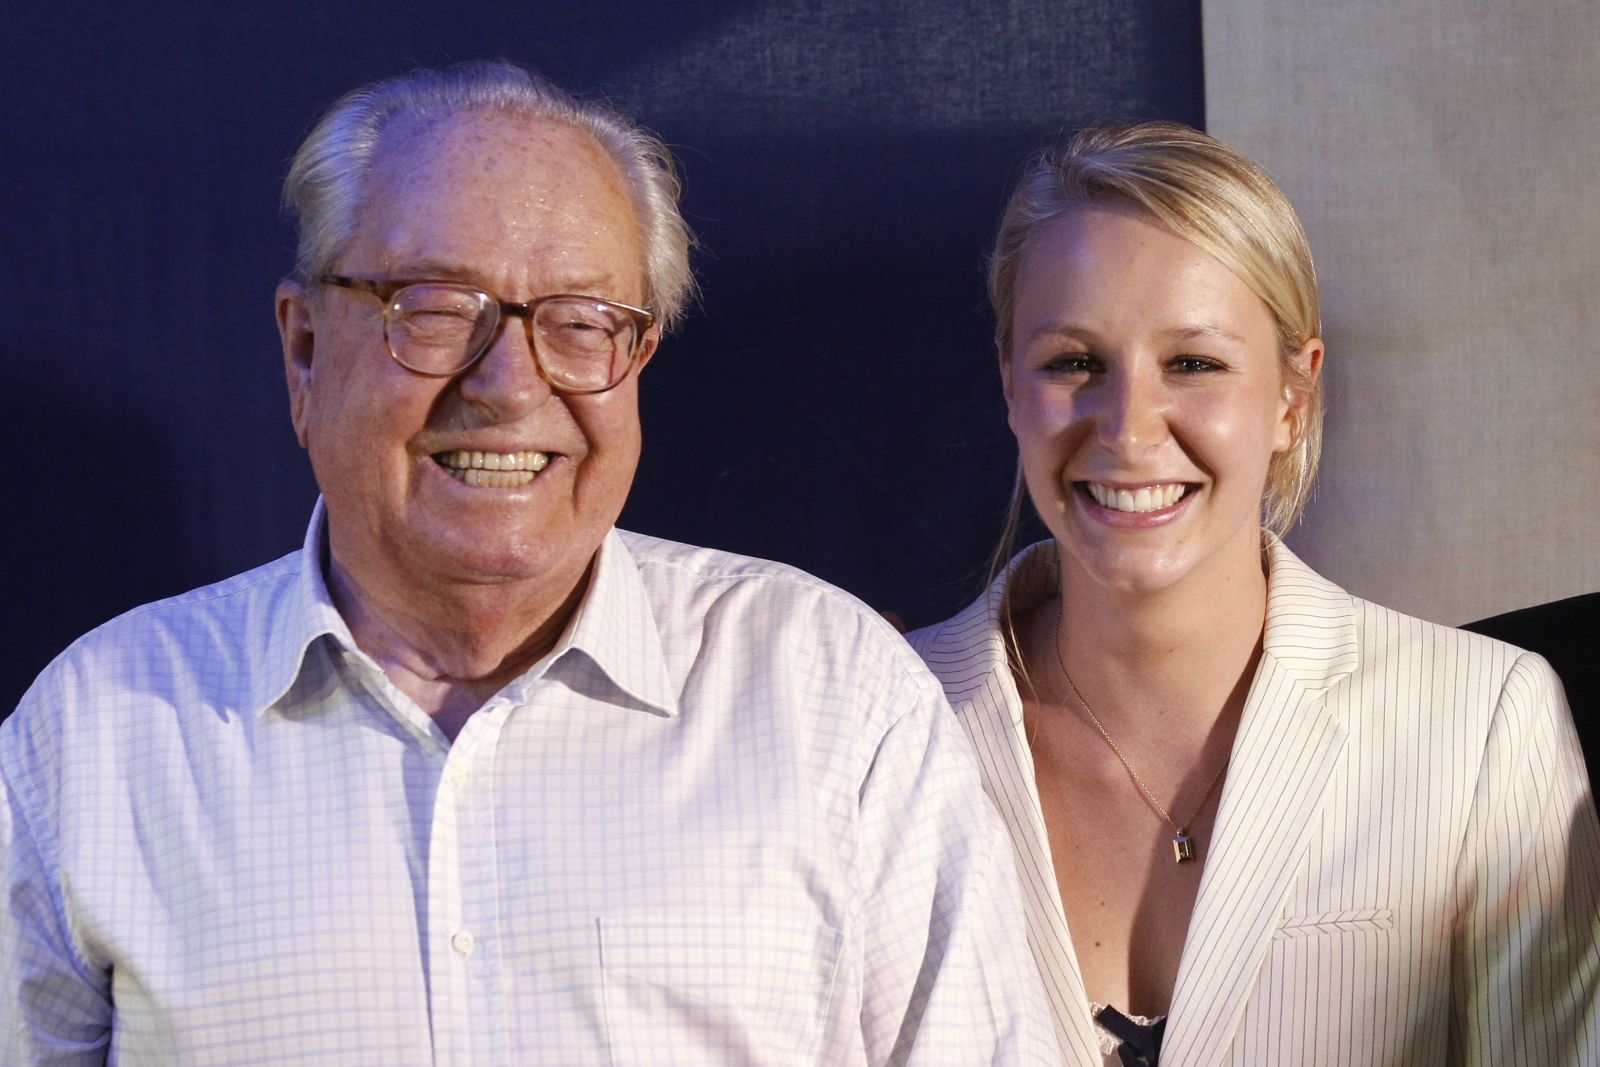 Marion LePen says Jean-Marie must keep word